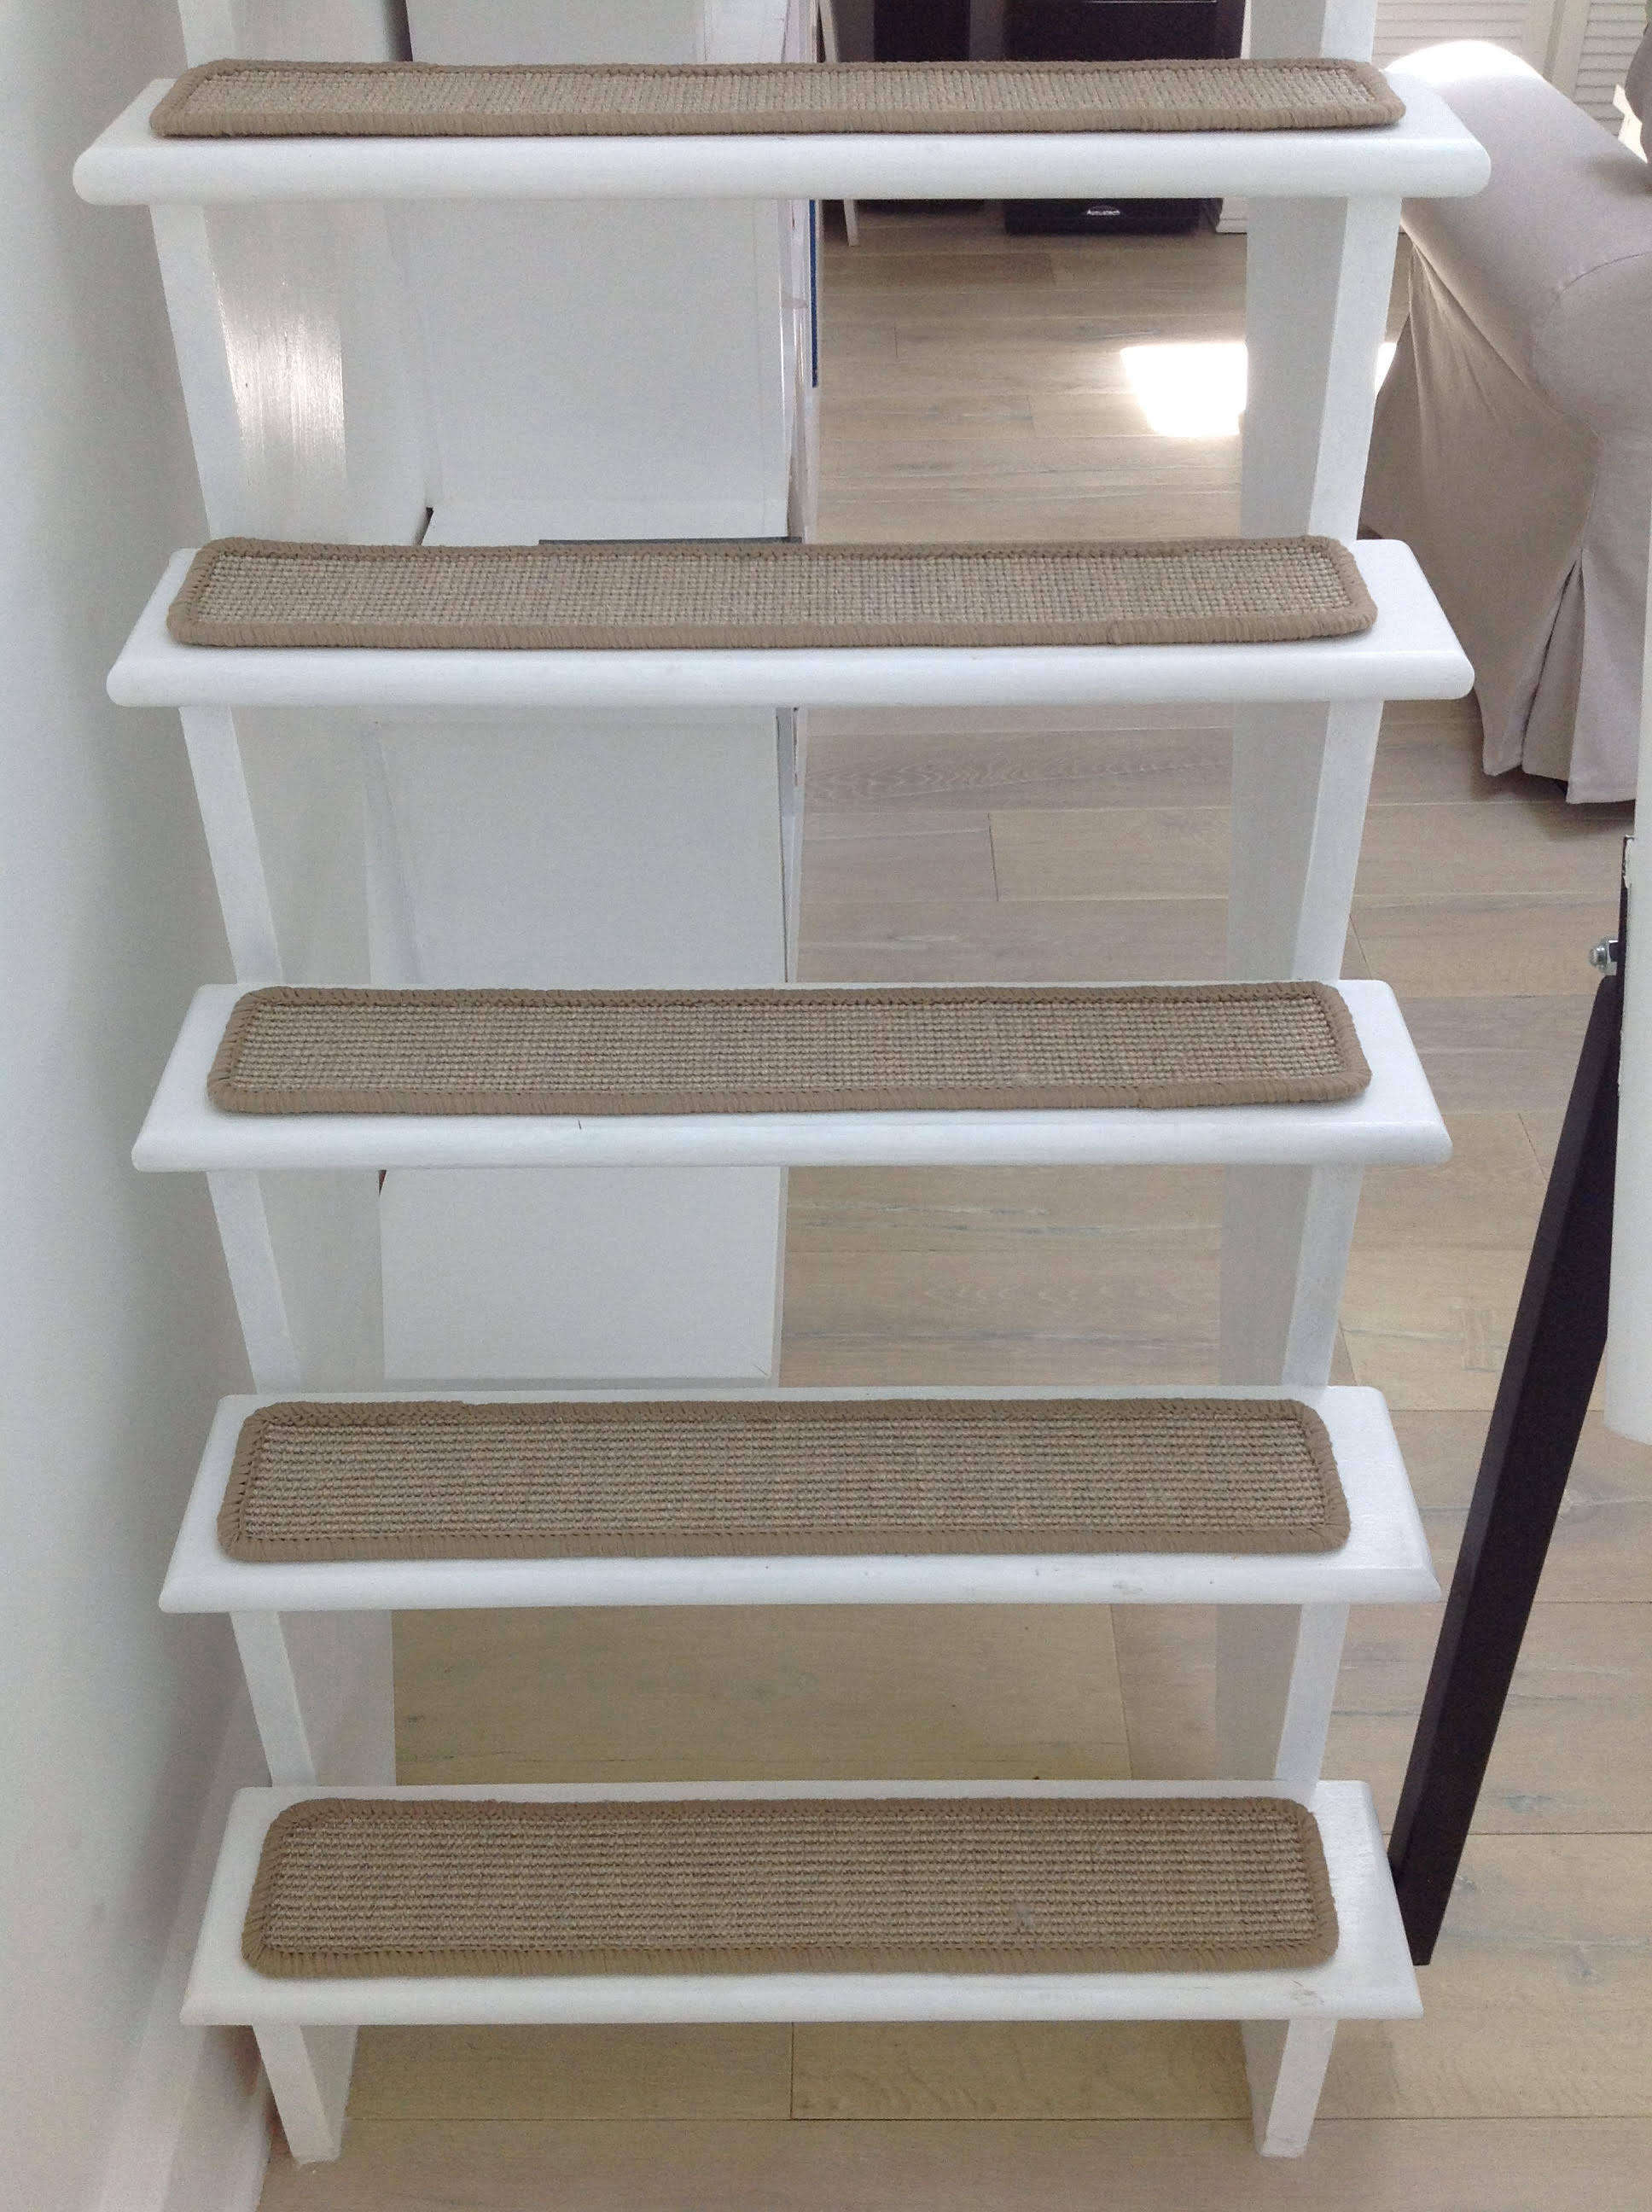 The stairway to the loft.